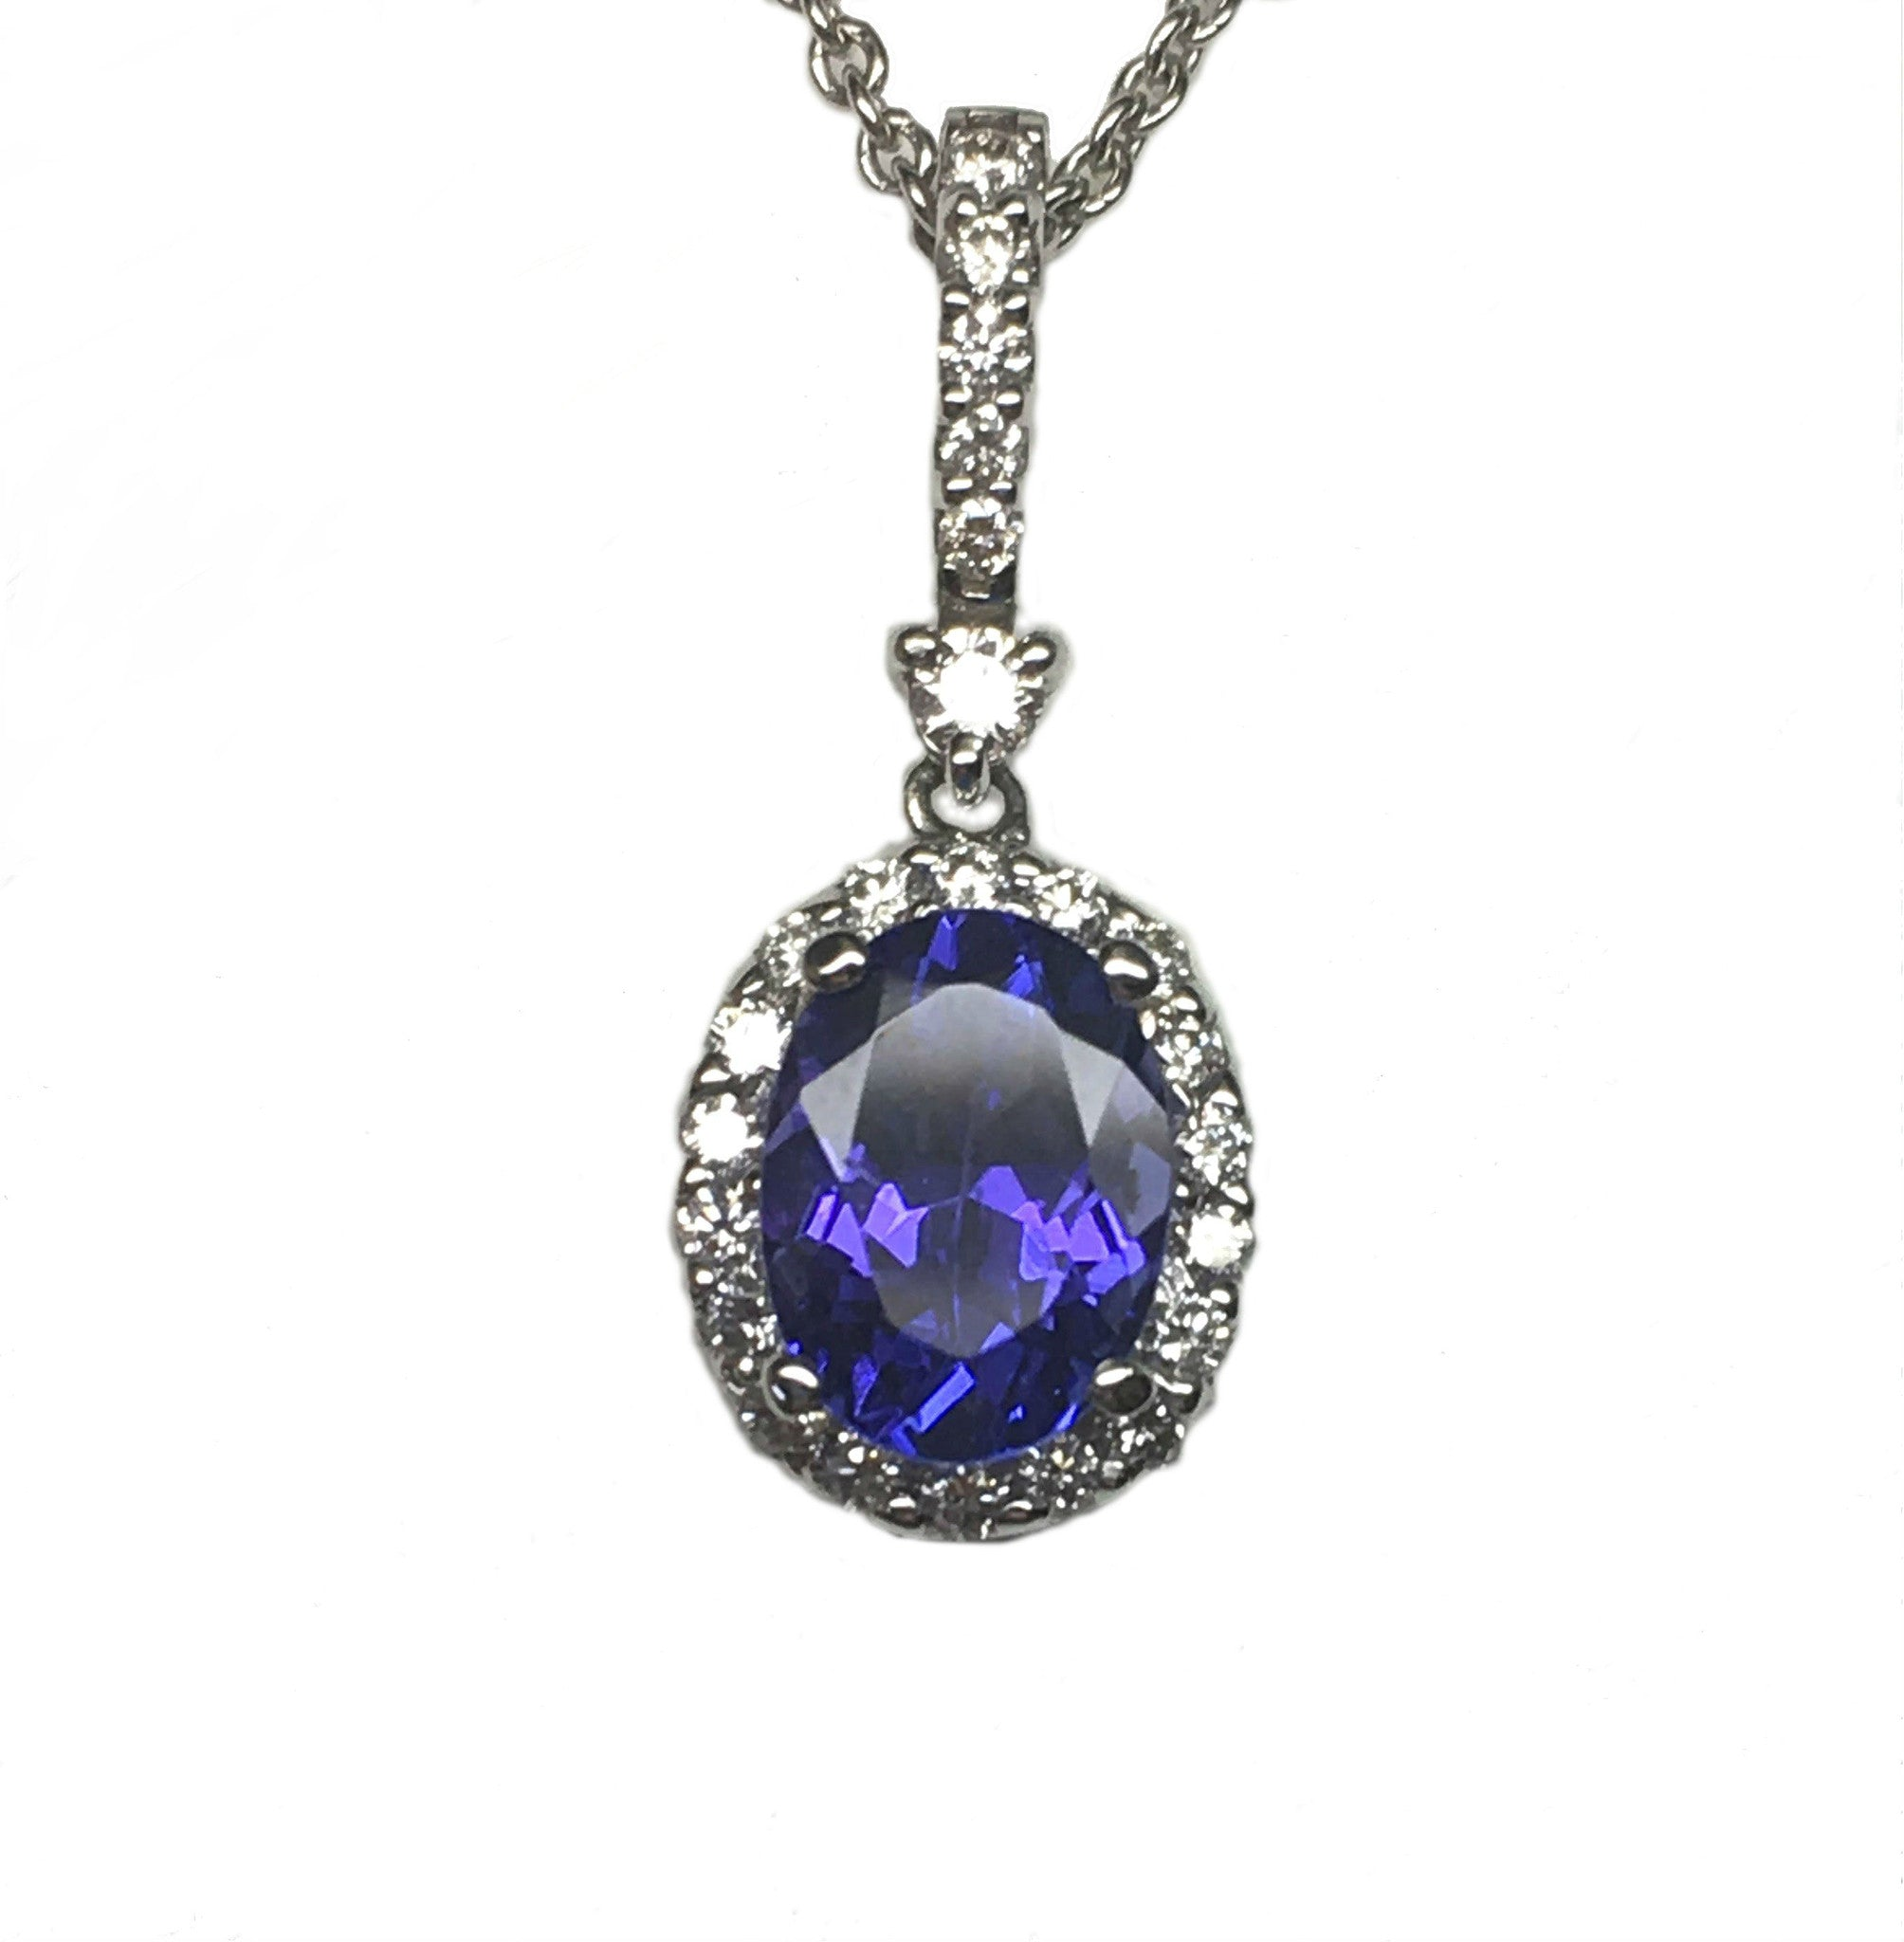 pendant necklaces silver swarovski crystals sterling pendants tanzanite with oval